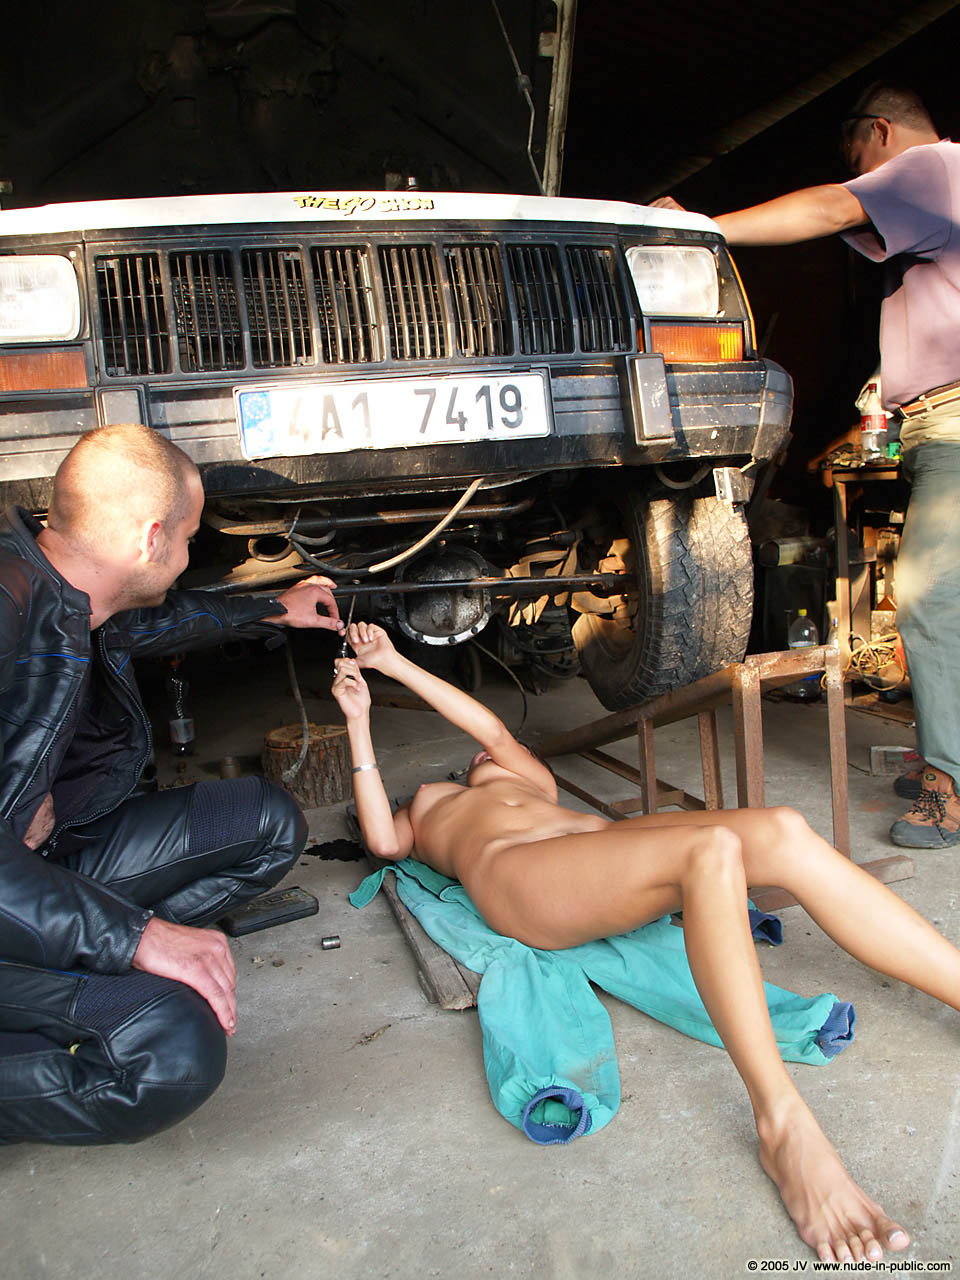 veronika-e-junkyard-cars-mechanic-nude-in-public-12